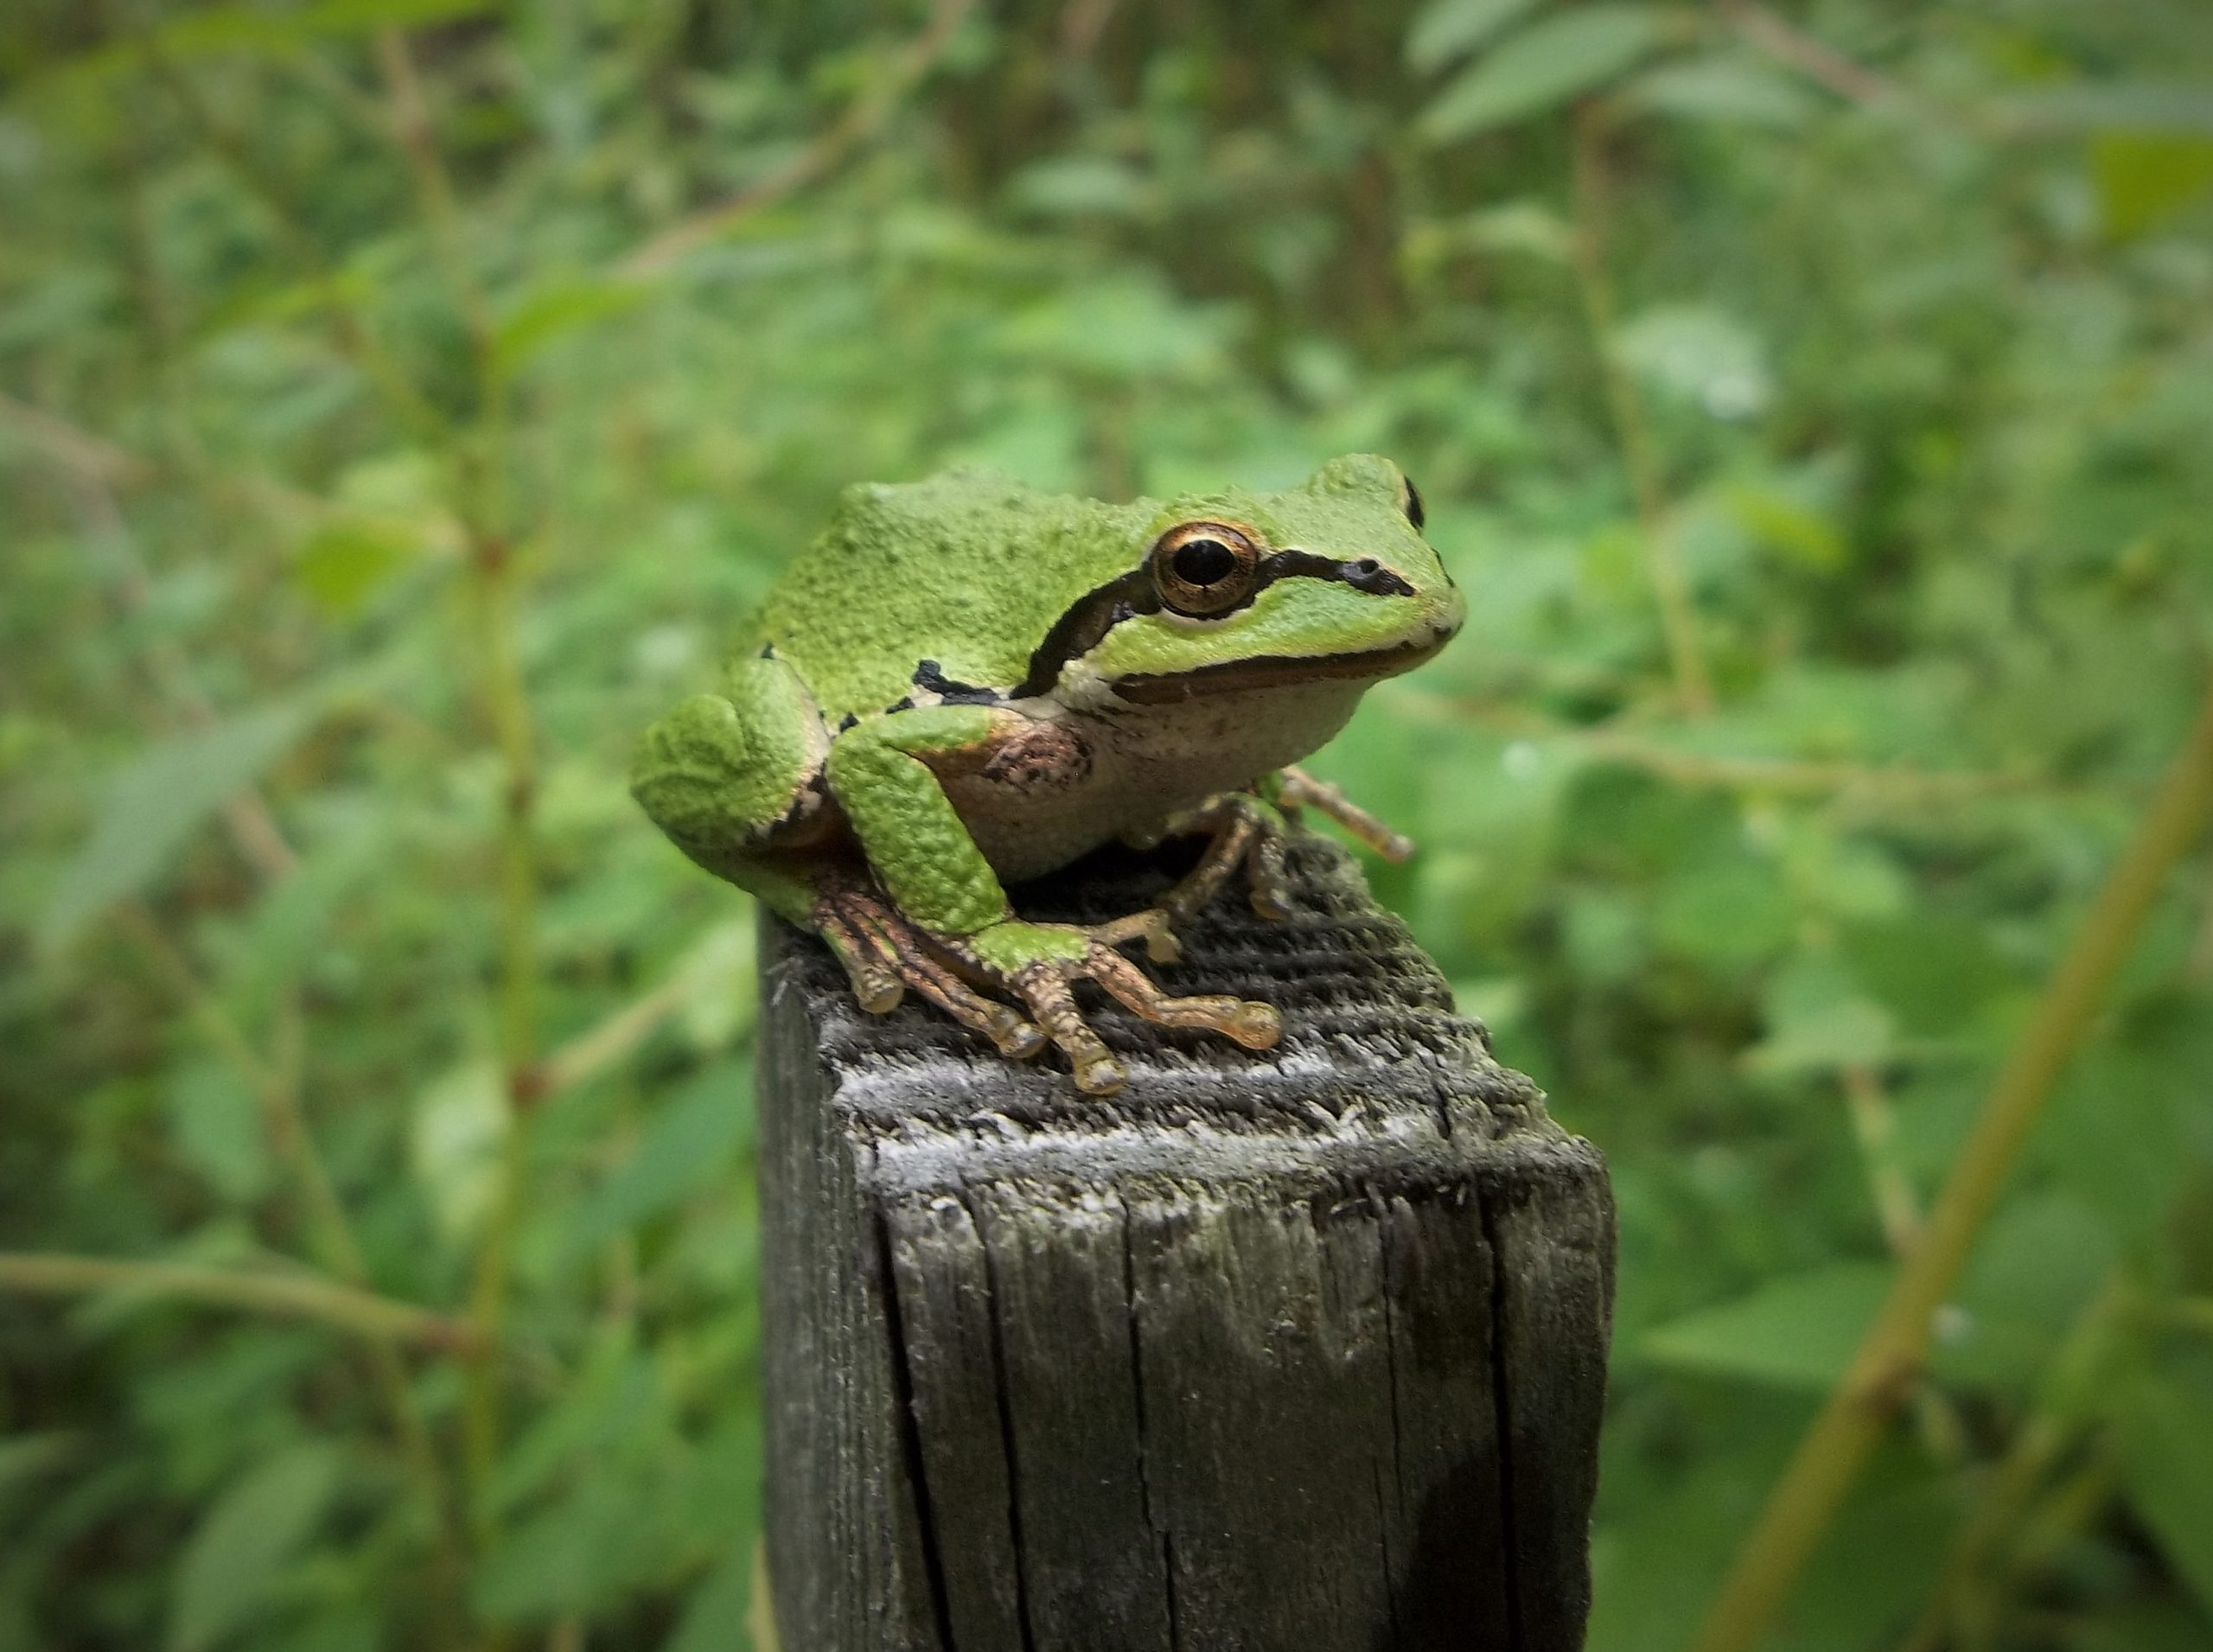 A Pacific treefrog sits on top of a fence post.